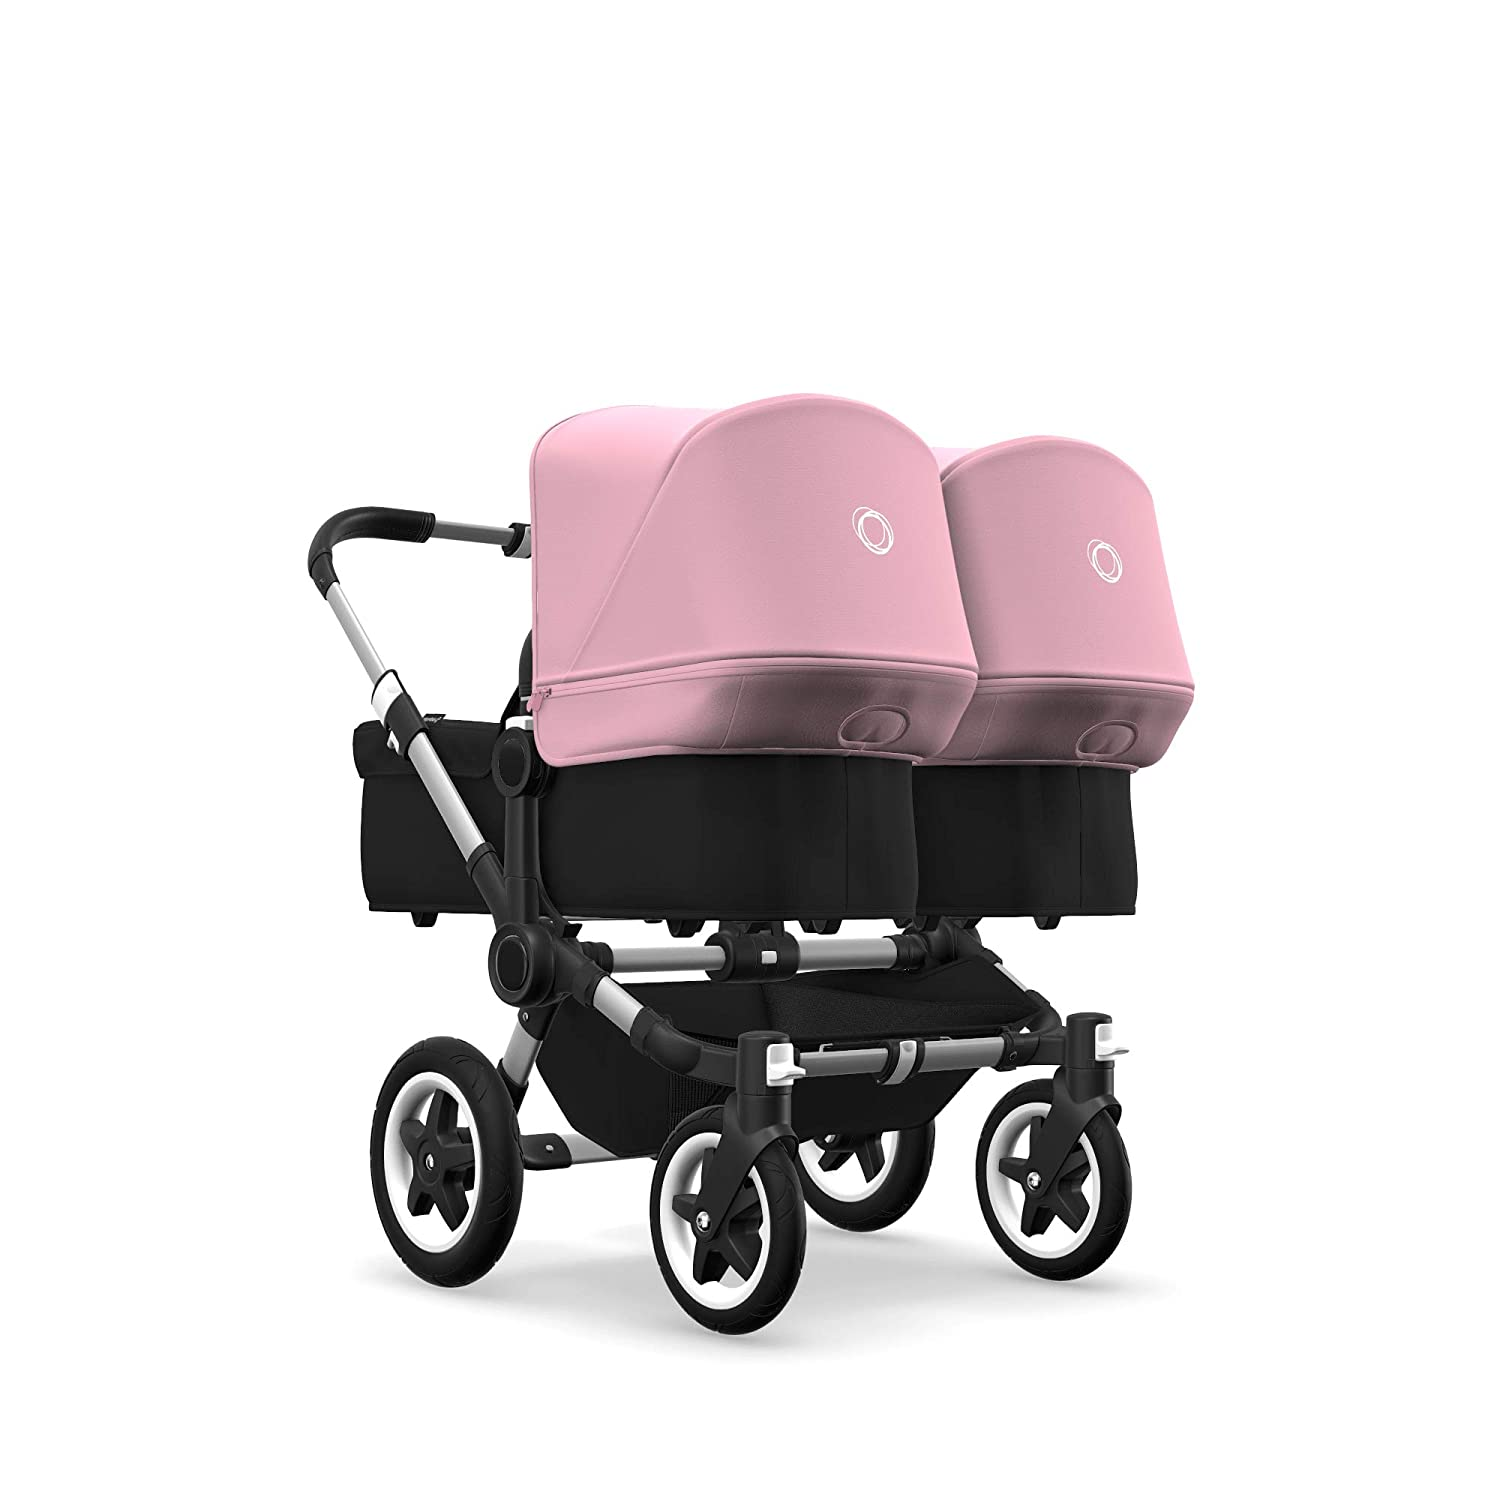 Bugaboo Donkey2 Sun Canopy Soft Pink Extendable Sun Shade for Full Weather Protection Machine Washable